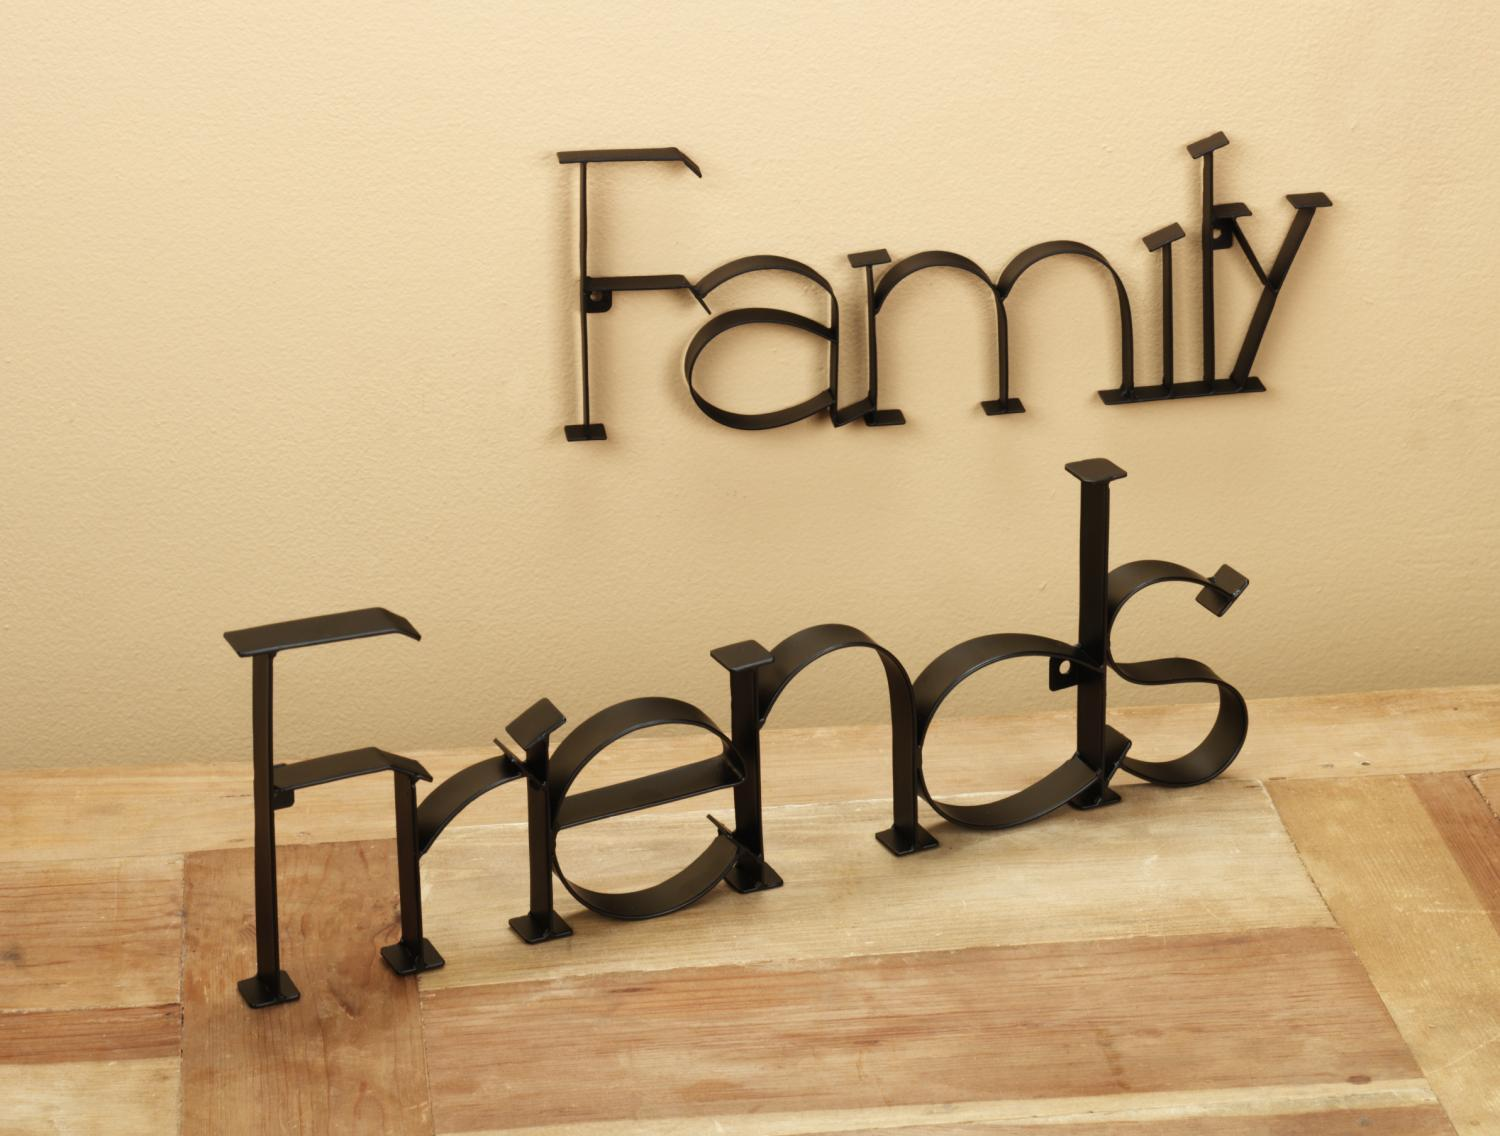 Word art expressions friends and family 578466fswk before sundown word art expressions friends and family 578466fswk publicscrutiny Choice Image